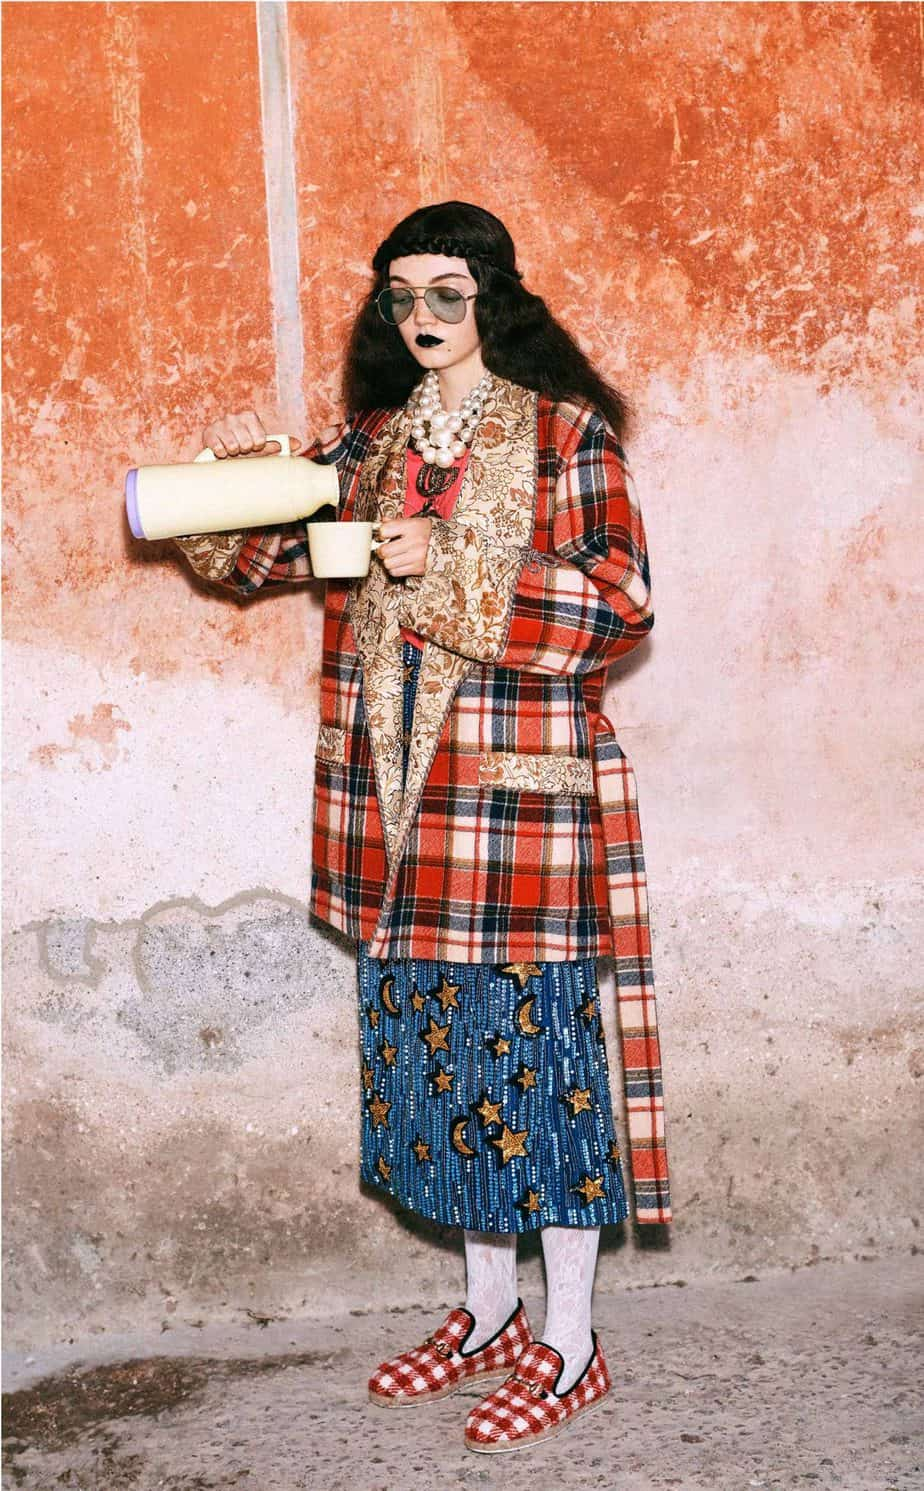 GUCCI, FALL 2019. WOMEN'S FASHION, Photographer Harmony Korine, Art Director, Christopher Simmonds - 22